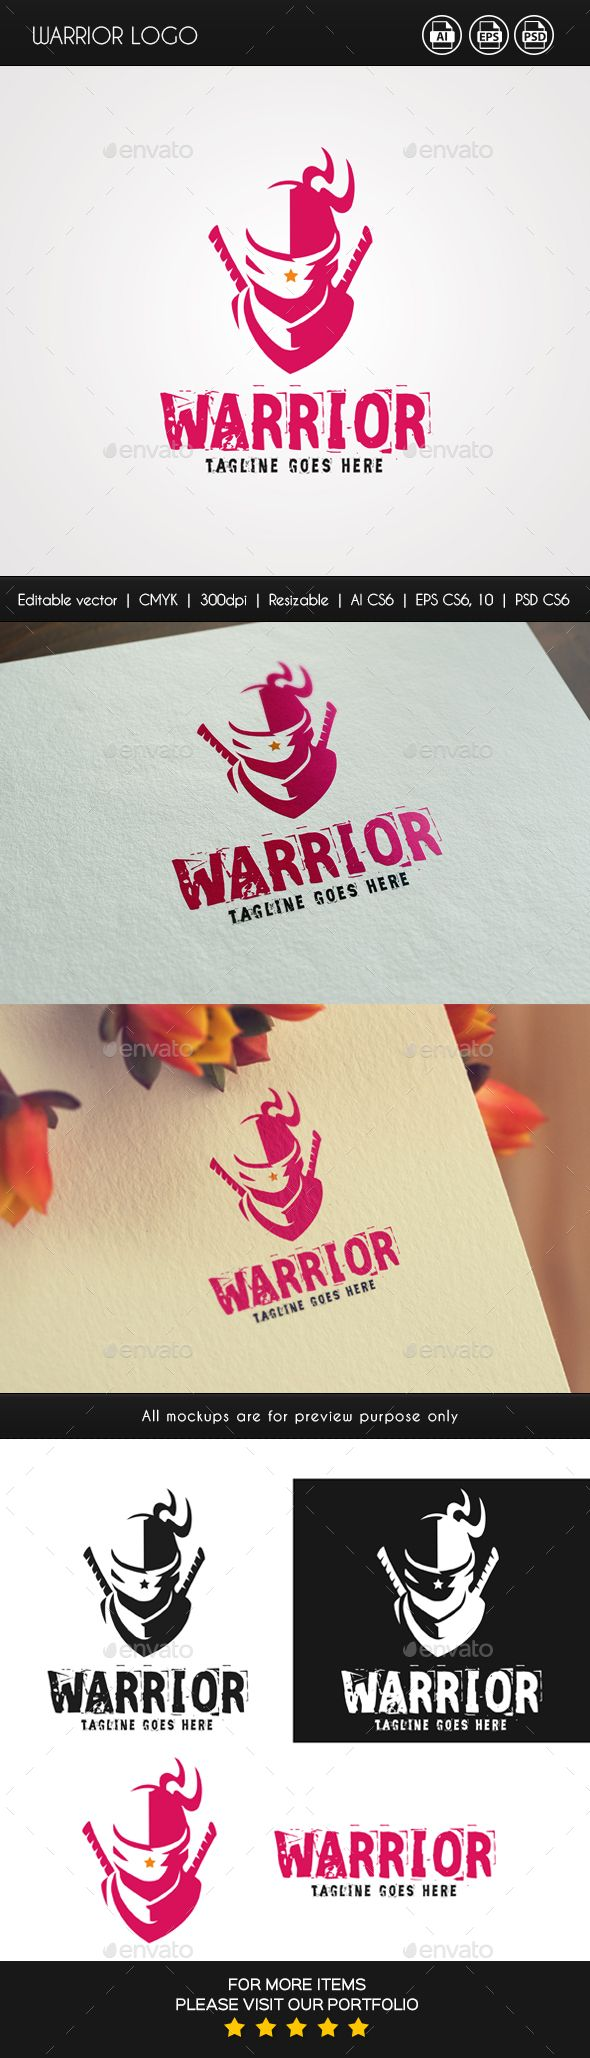 Warrior logo template. 100 vector files and well organized. All objects are grouped for easy editng. Can be used for your own bus